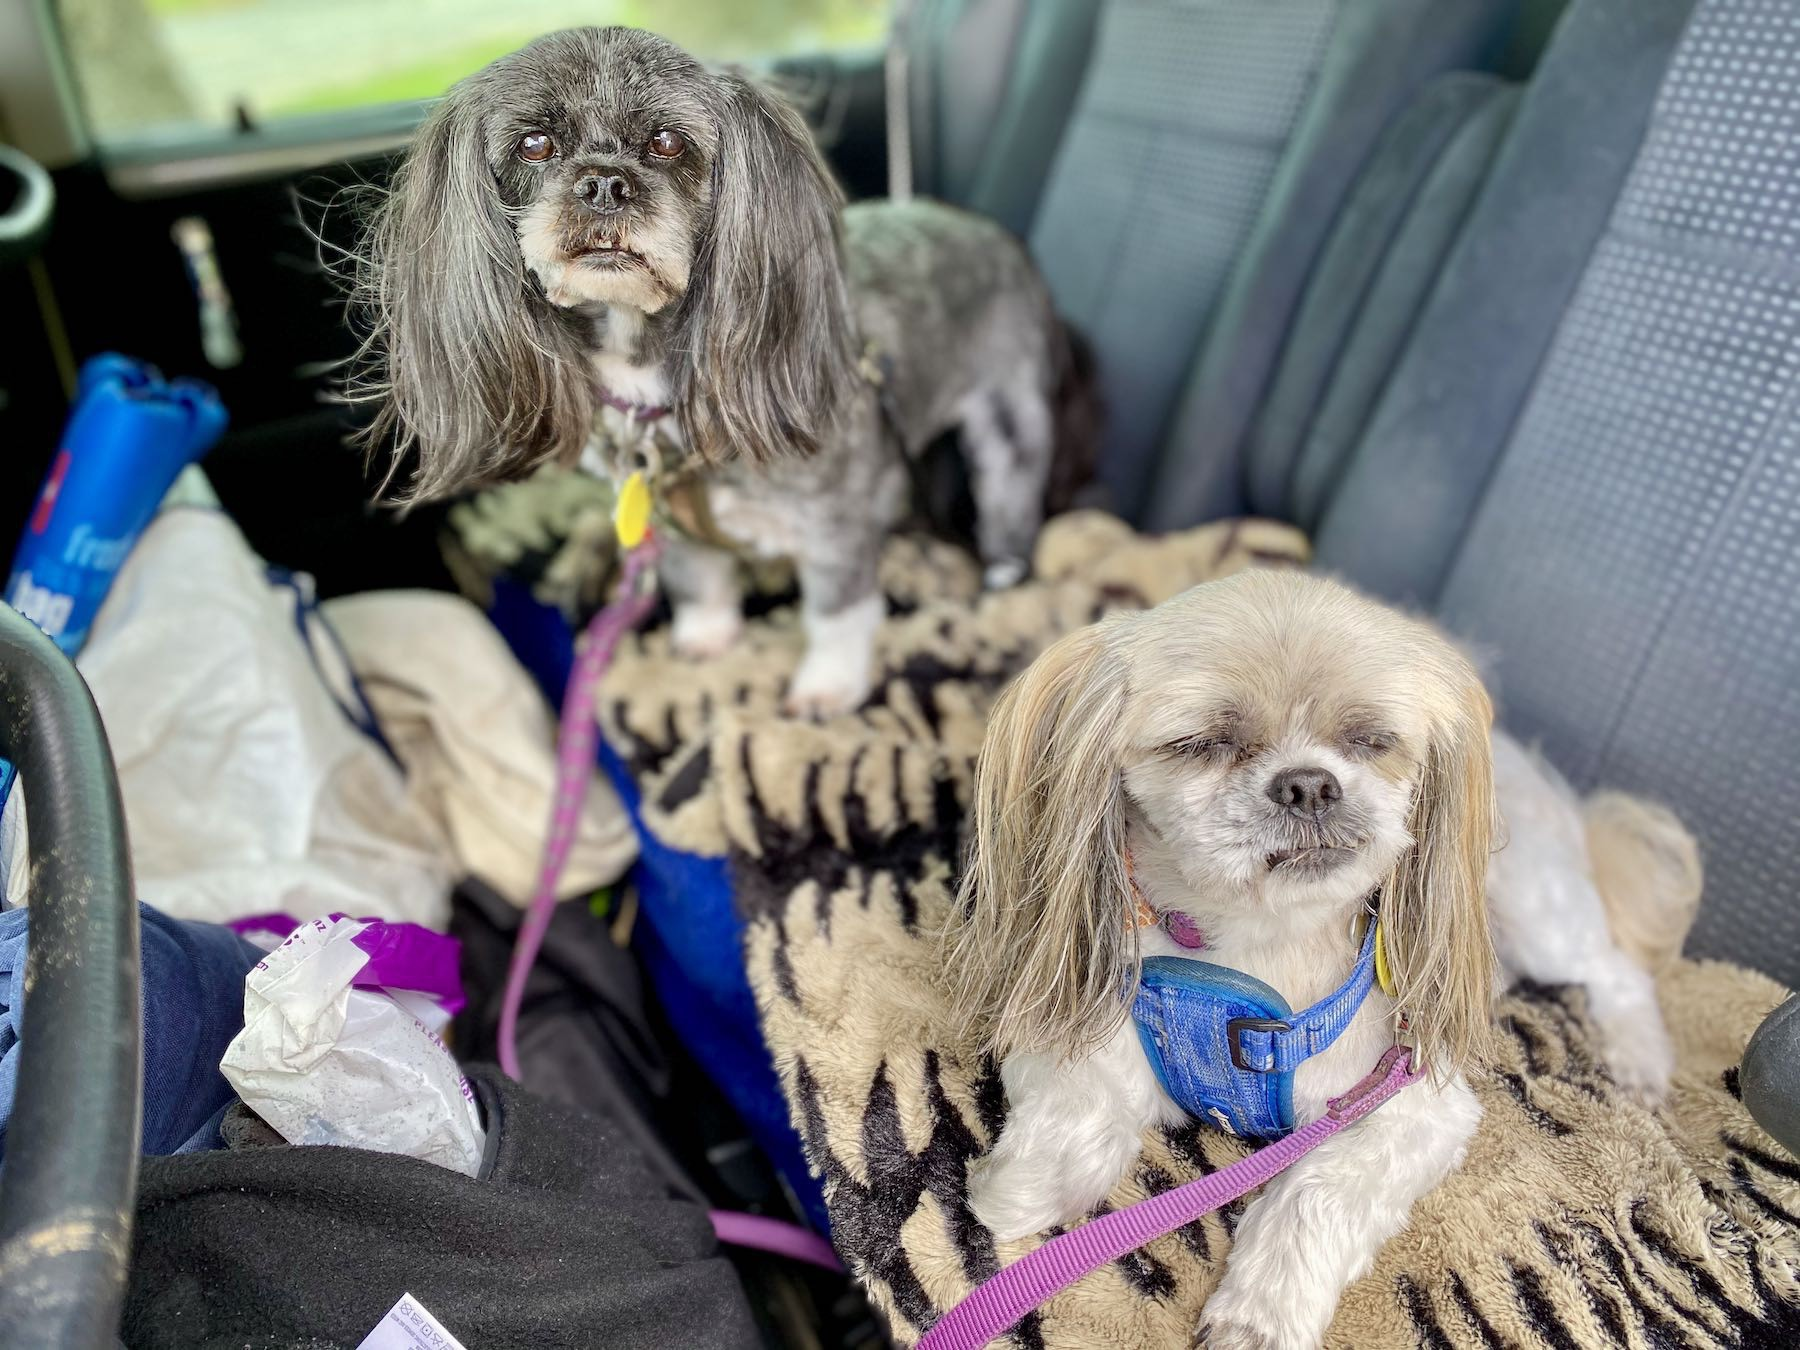 Two trim and tidy dogs in a car.